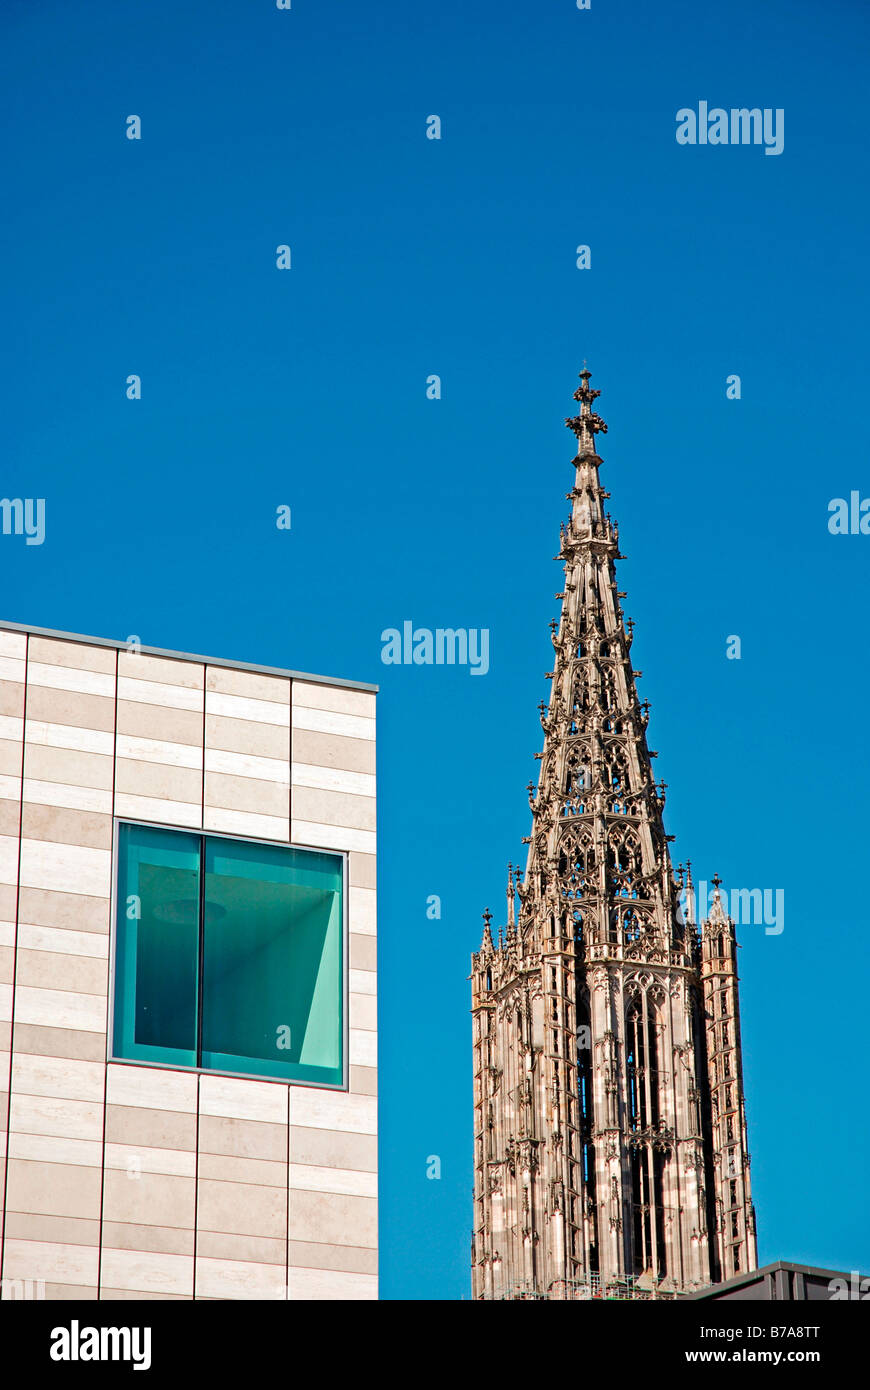 Assemblage Weishaupt and Ulmer Muenster, Ulm, Baden-Wuerttemberg, Germany, Europe Stock Photo